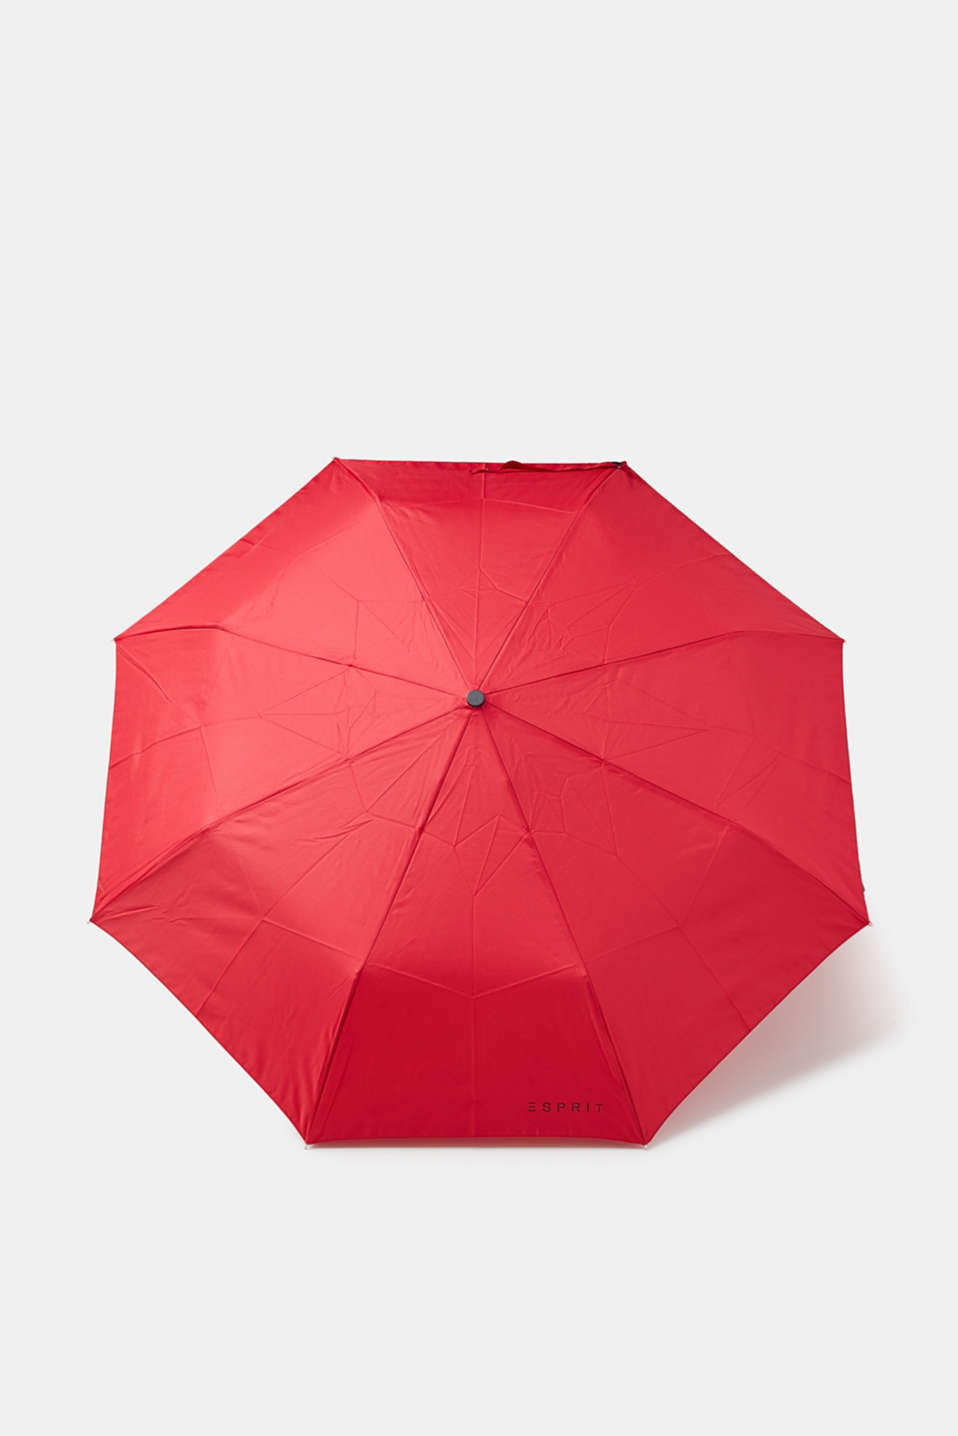 Esprit - Mini pocket-size umbrella, ultra-light